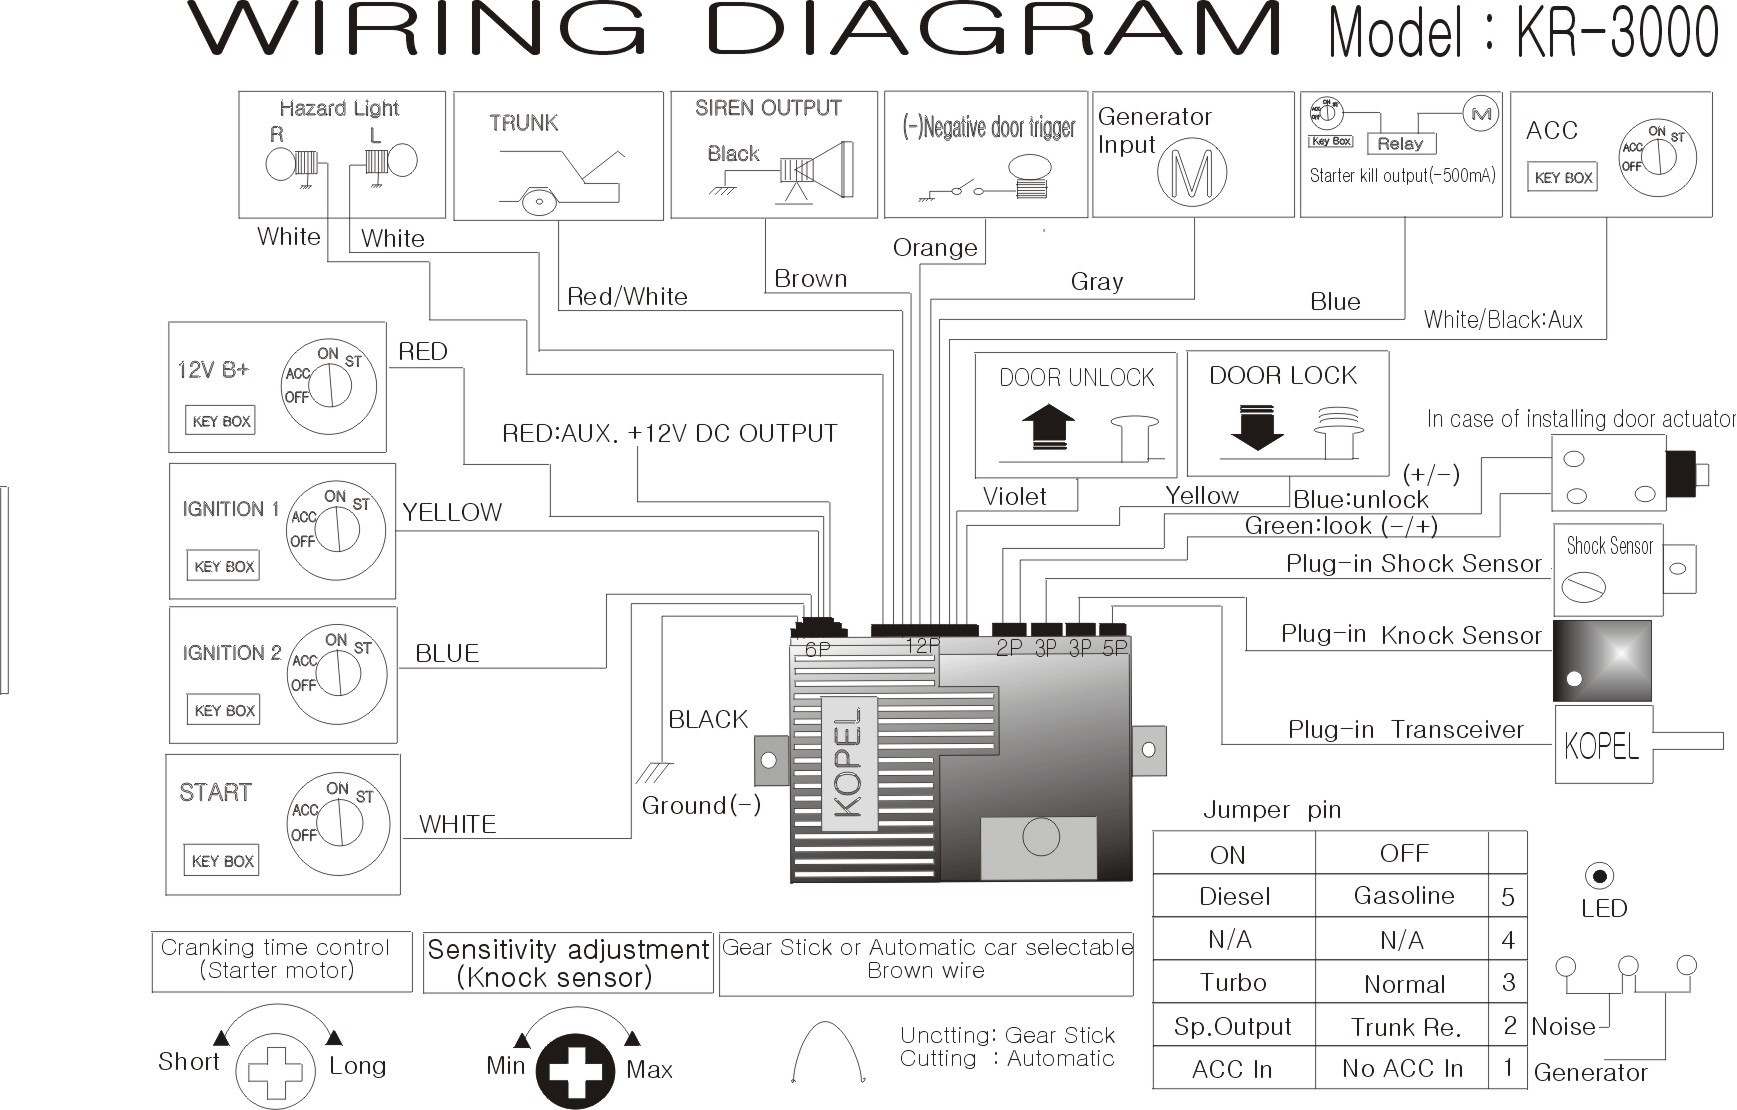 Car Alarm Wiring Diagram Rccarsusa Page 5 Of 24 Wiring Diagrams Sample and Frees Of Car Alarm Wiring Diagram